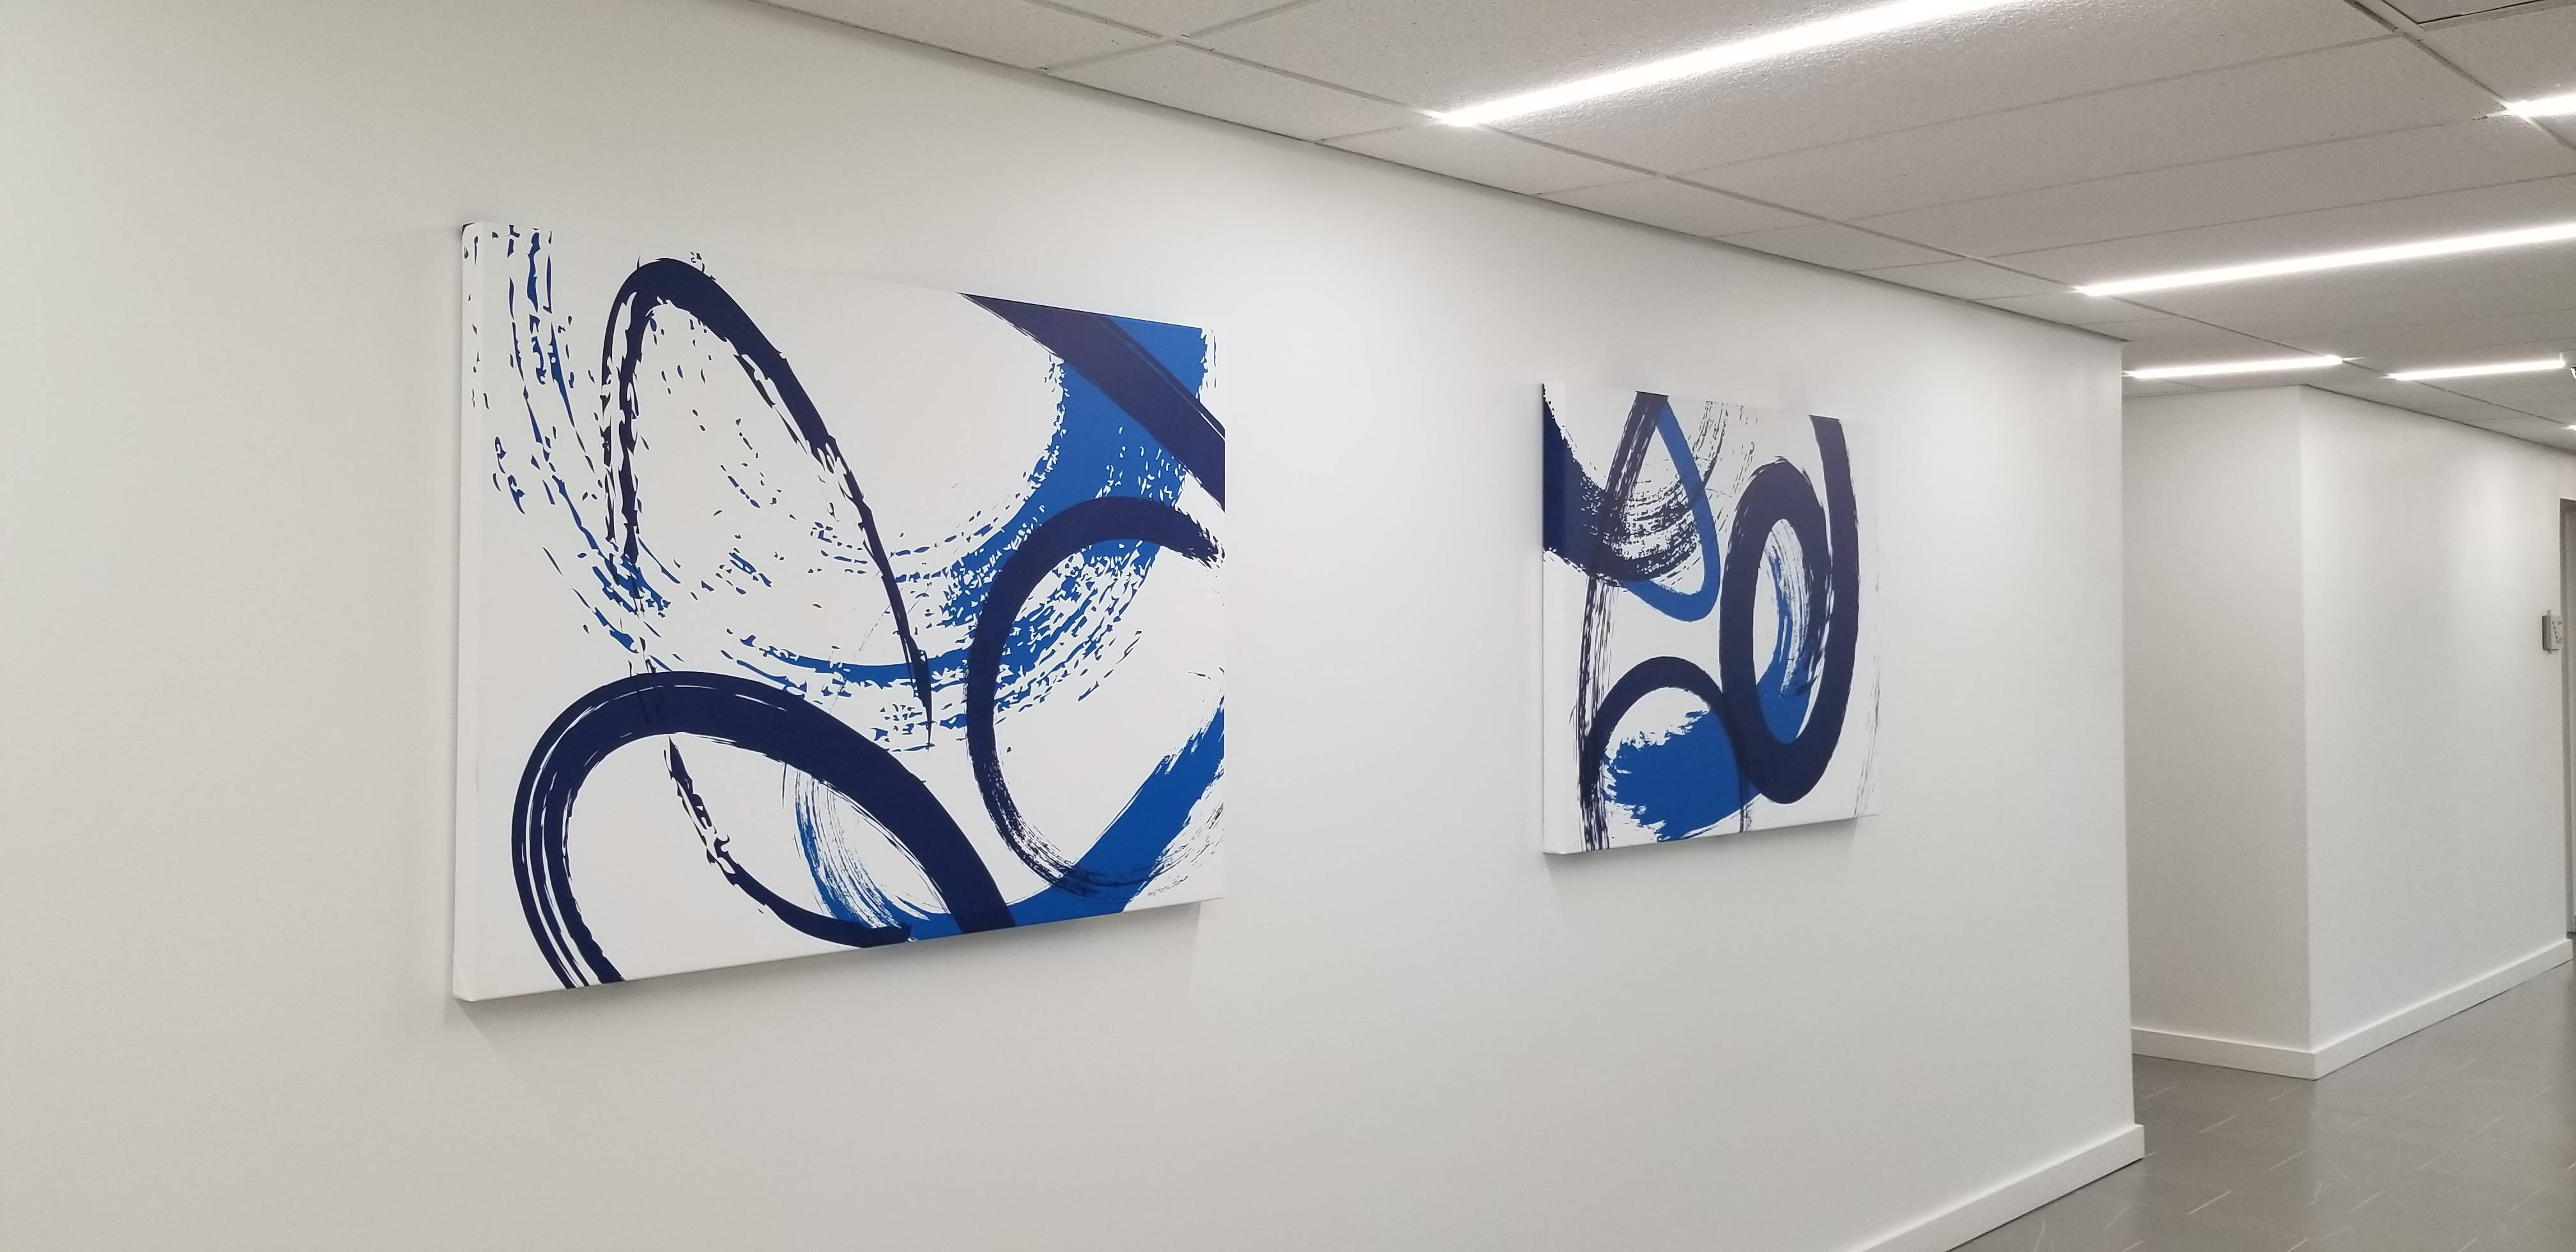 Canvas art installation experts in herndon Virginia